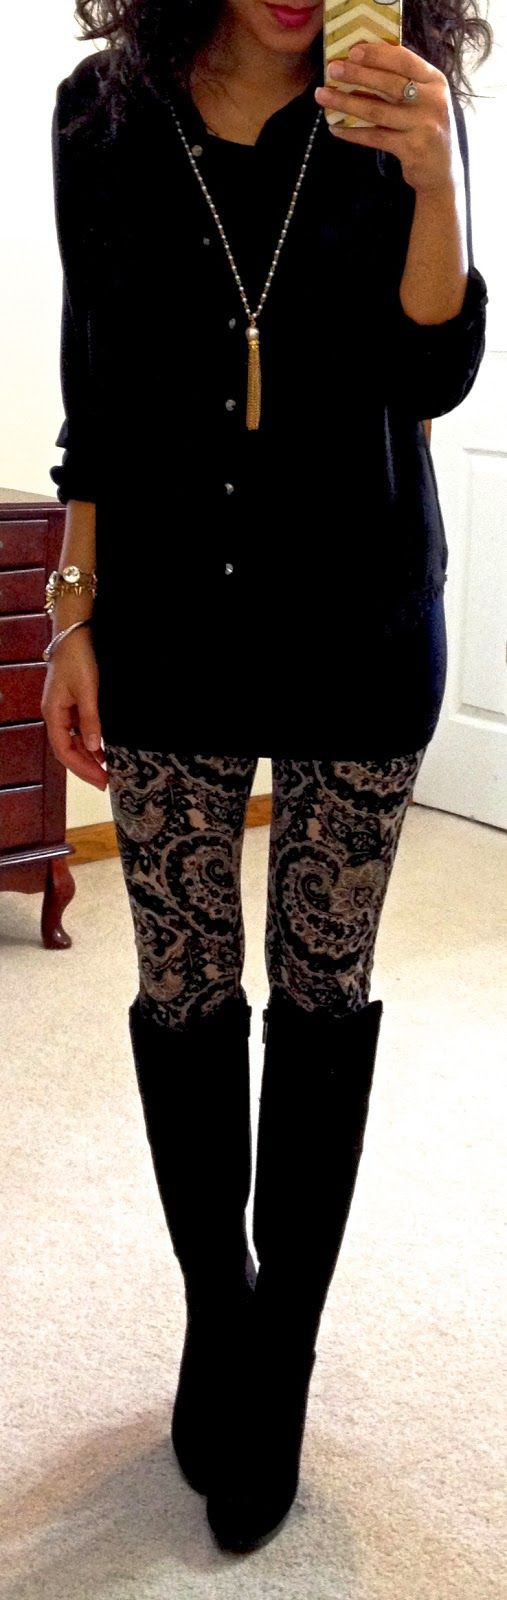 Black and gold leggings outfit